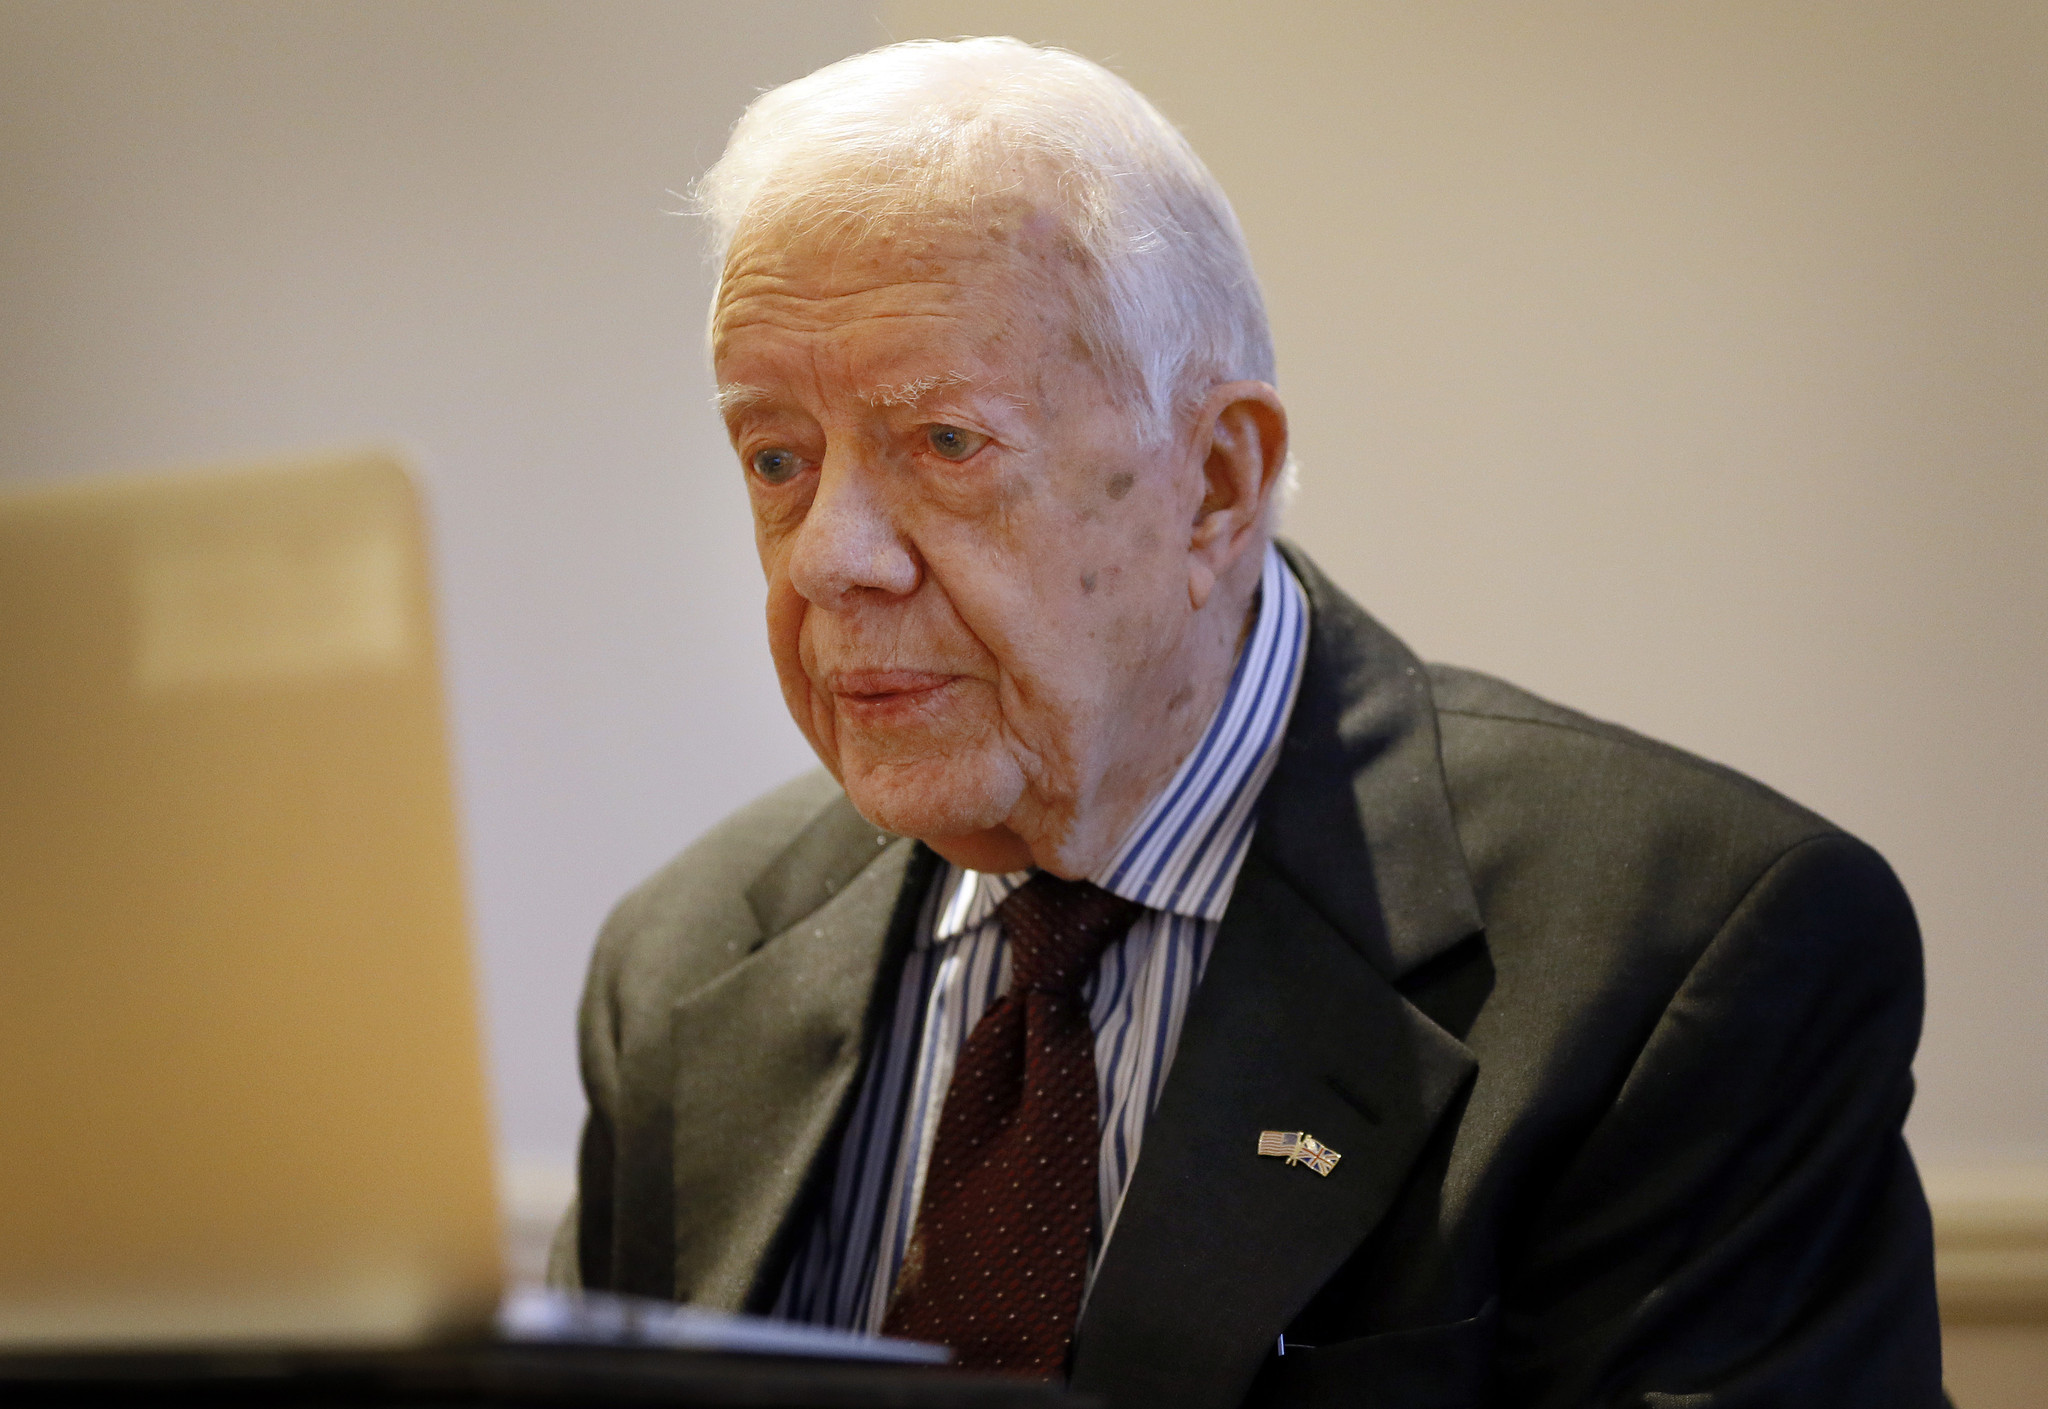 jimmy carter - photo #27